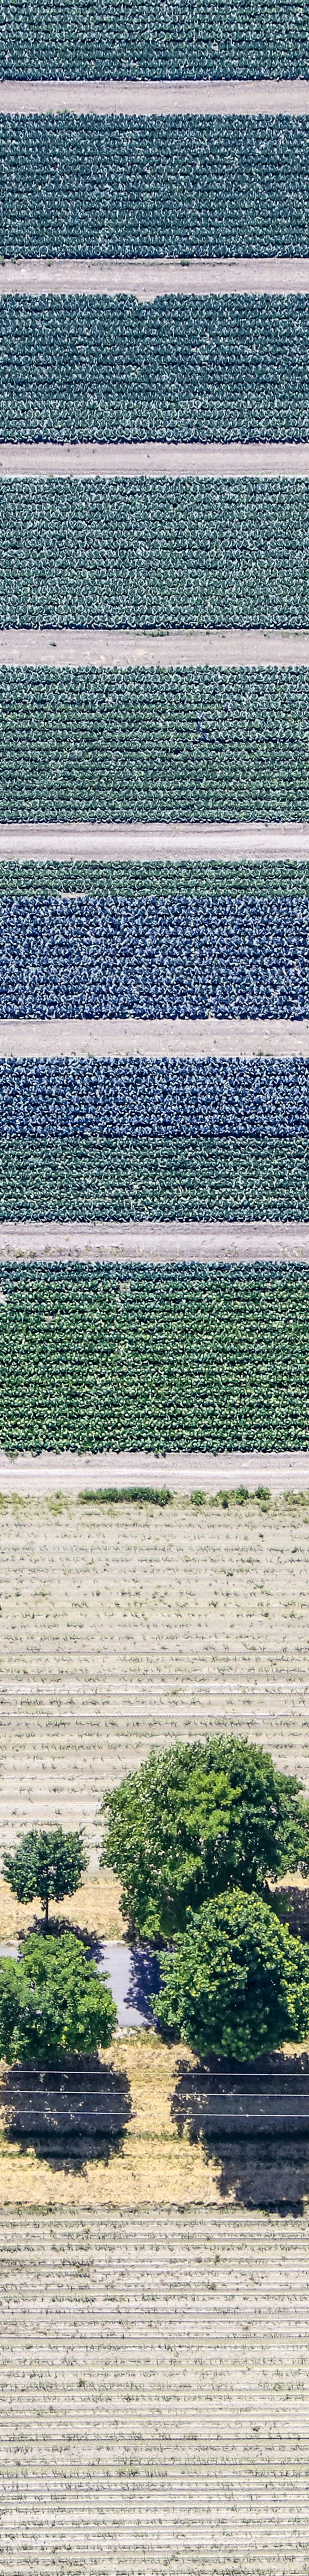 Aerial view of an alley below the strips of cabbage fields - Klaus Leidorf Aerial Photography